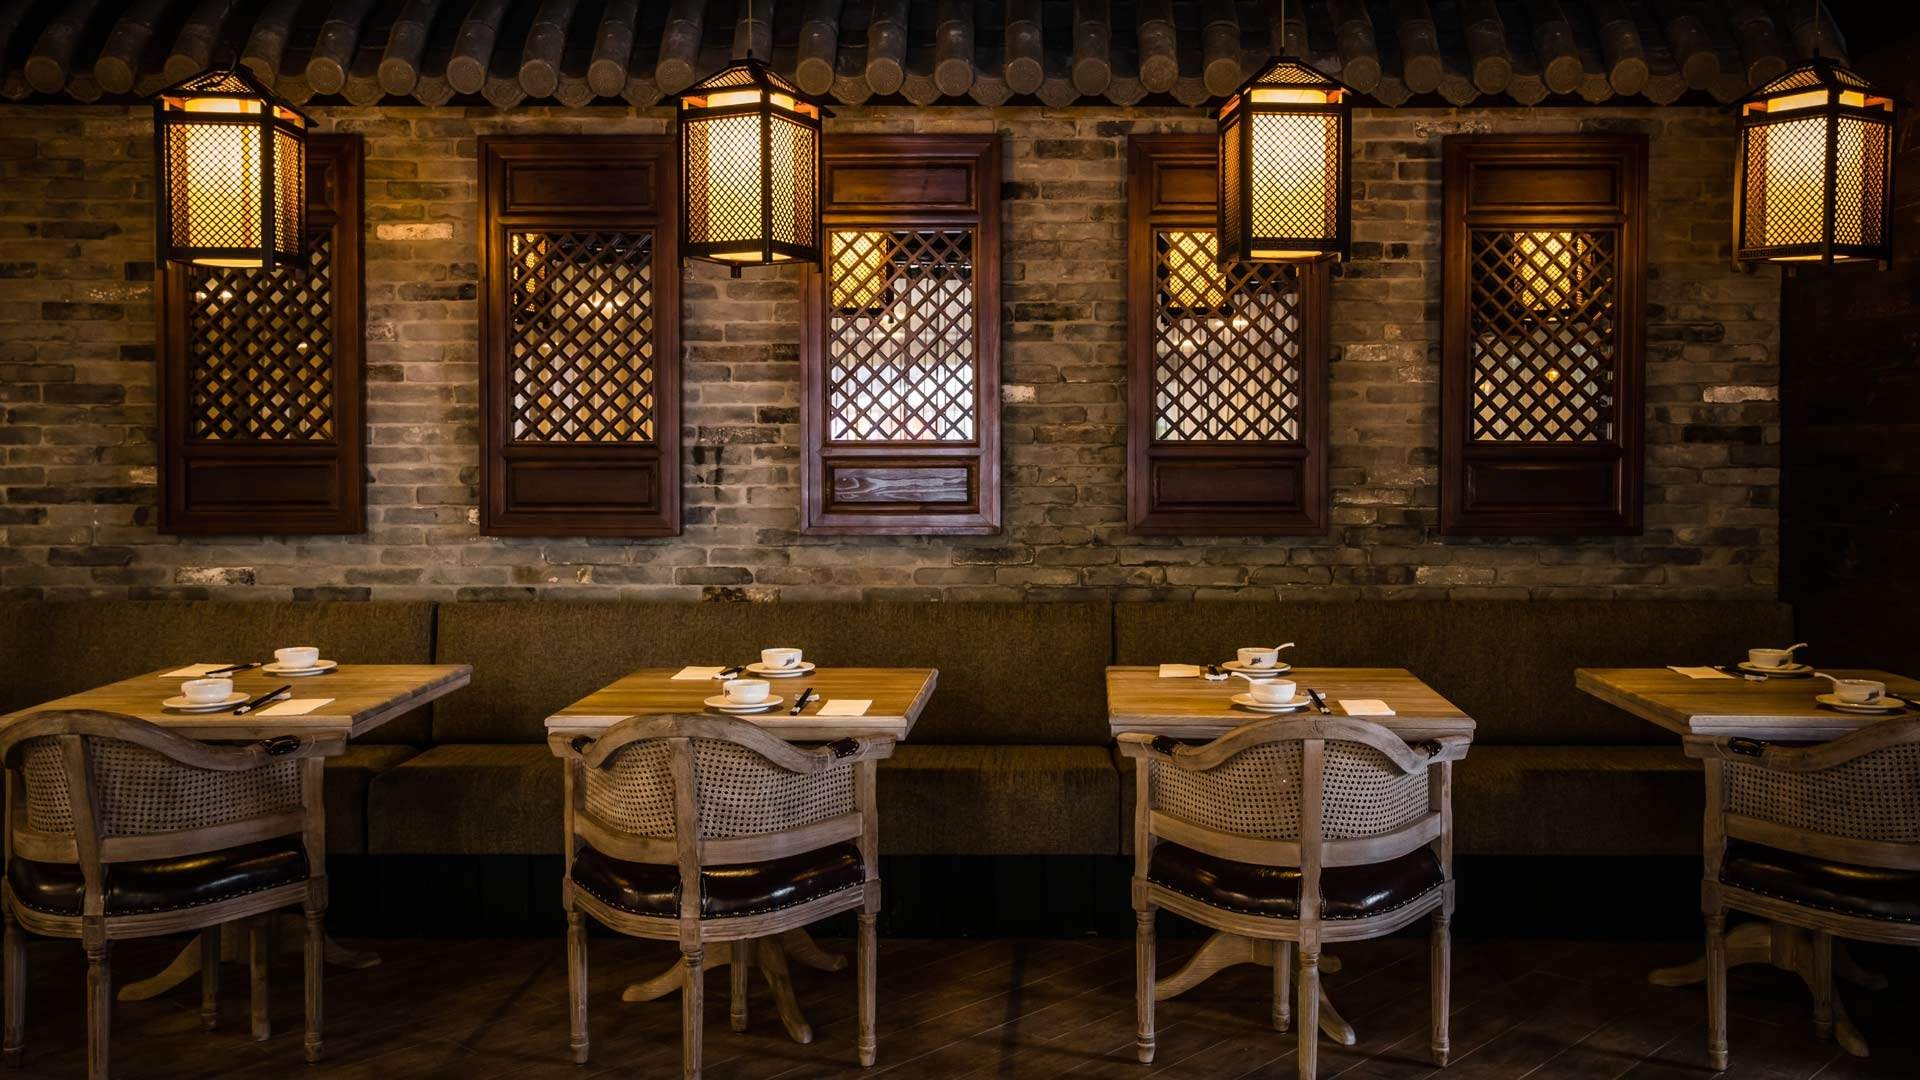 Canton! Canton! Is the CBD's New Home of Yum Cha and Hong Kong-Style Roast Meats